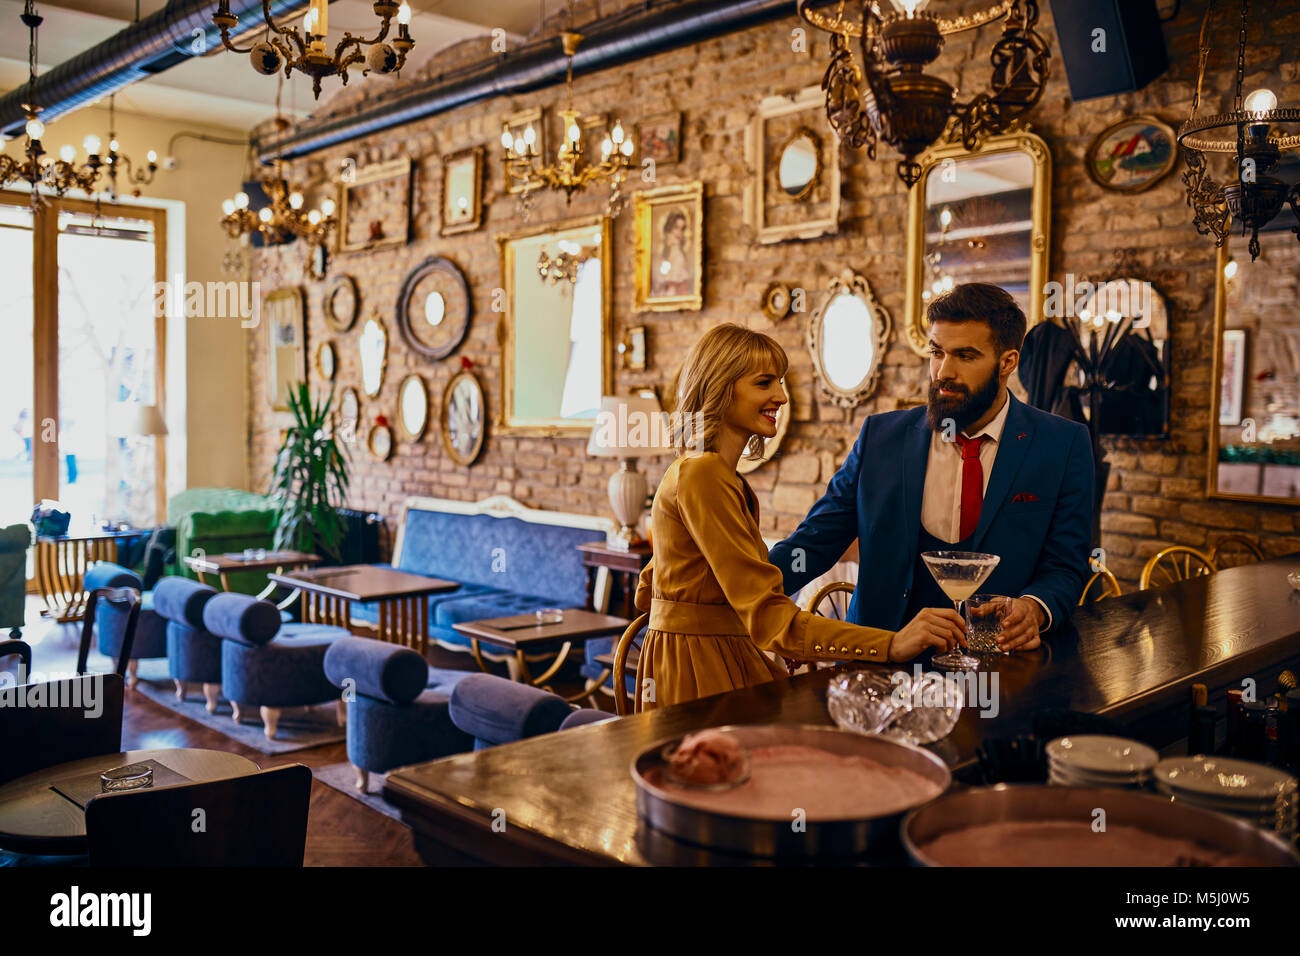 Elegant couple having a drink in a bar Stock Photo